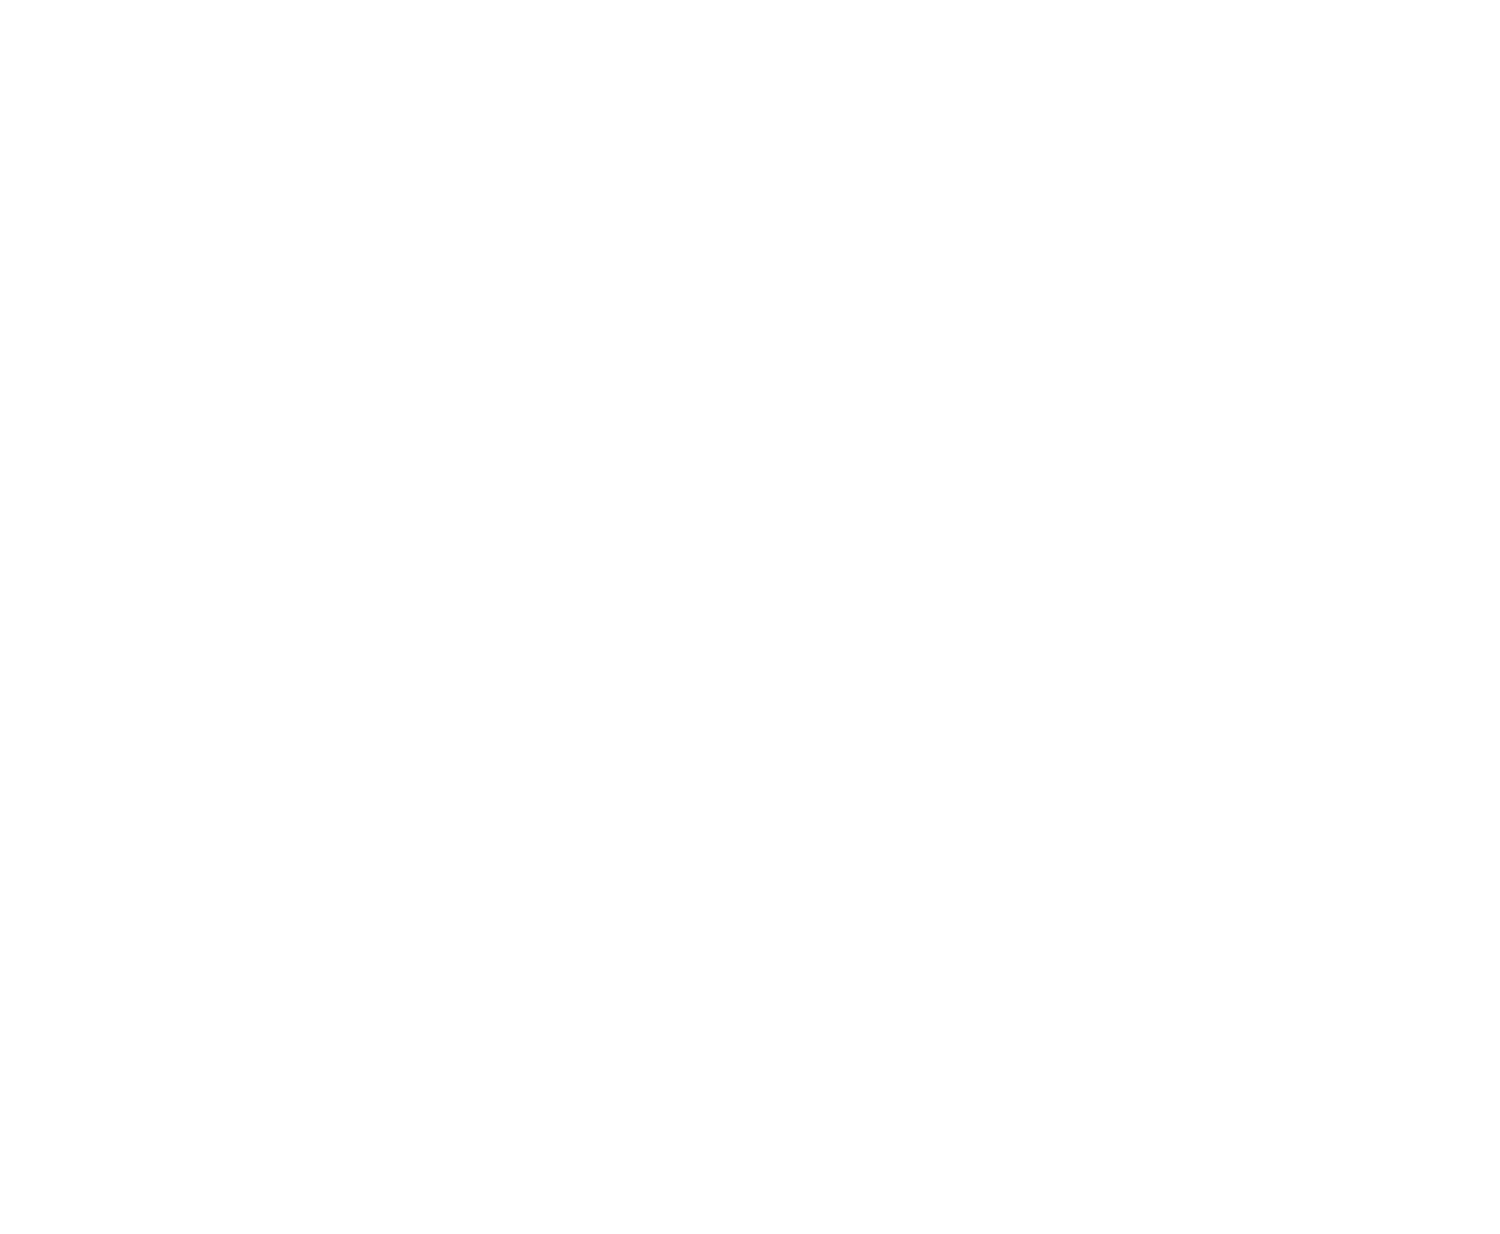 Lost Coast Surf Tech